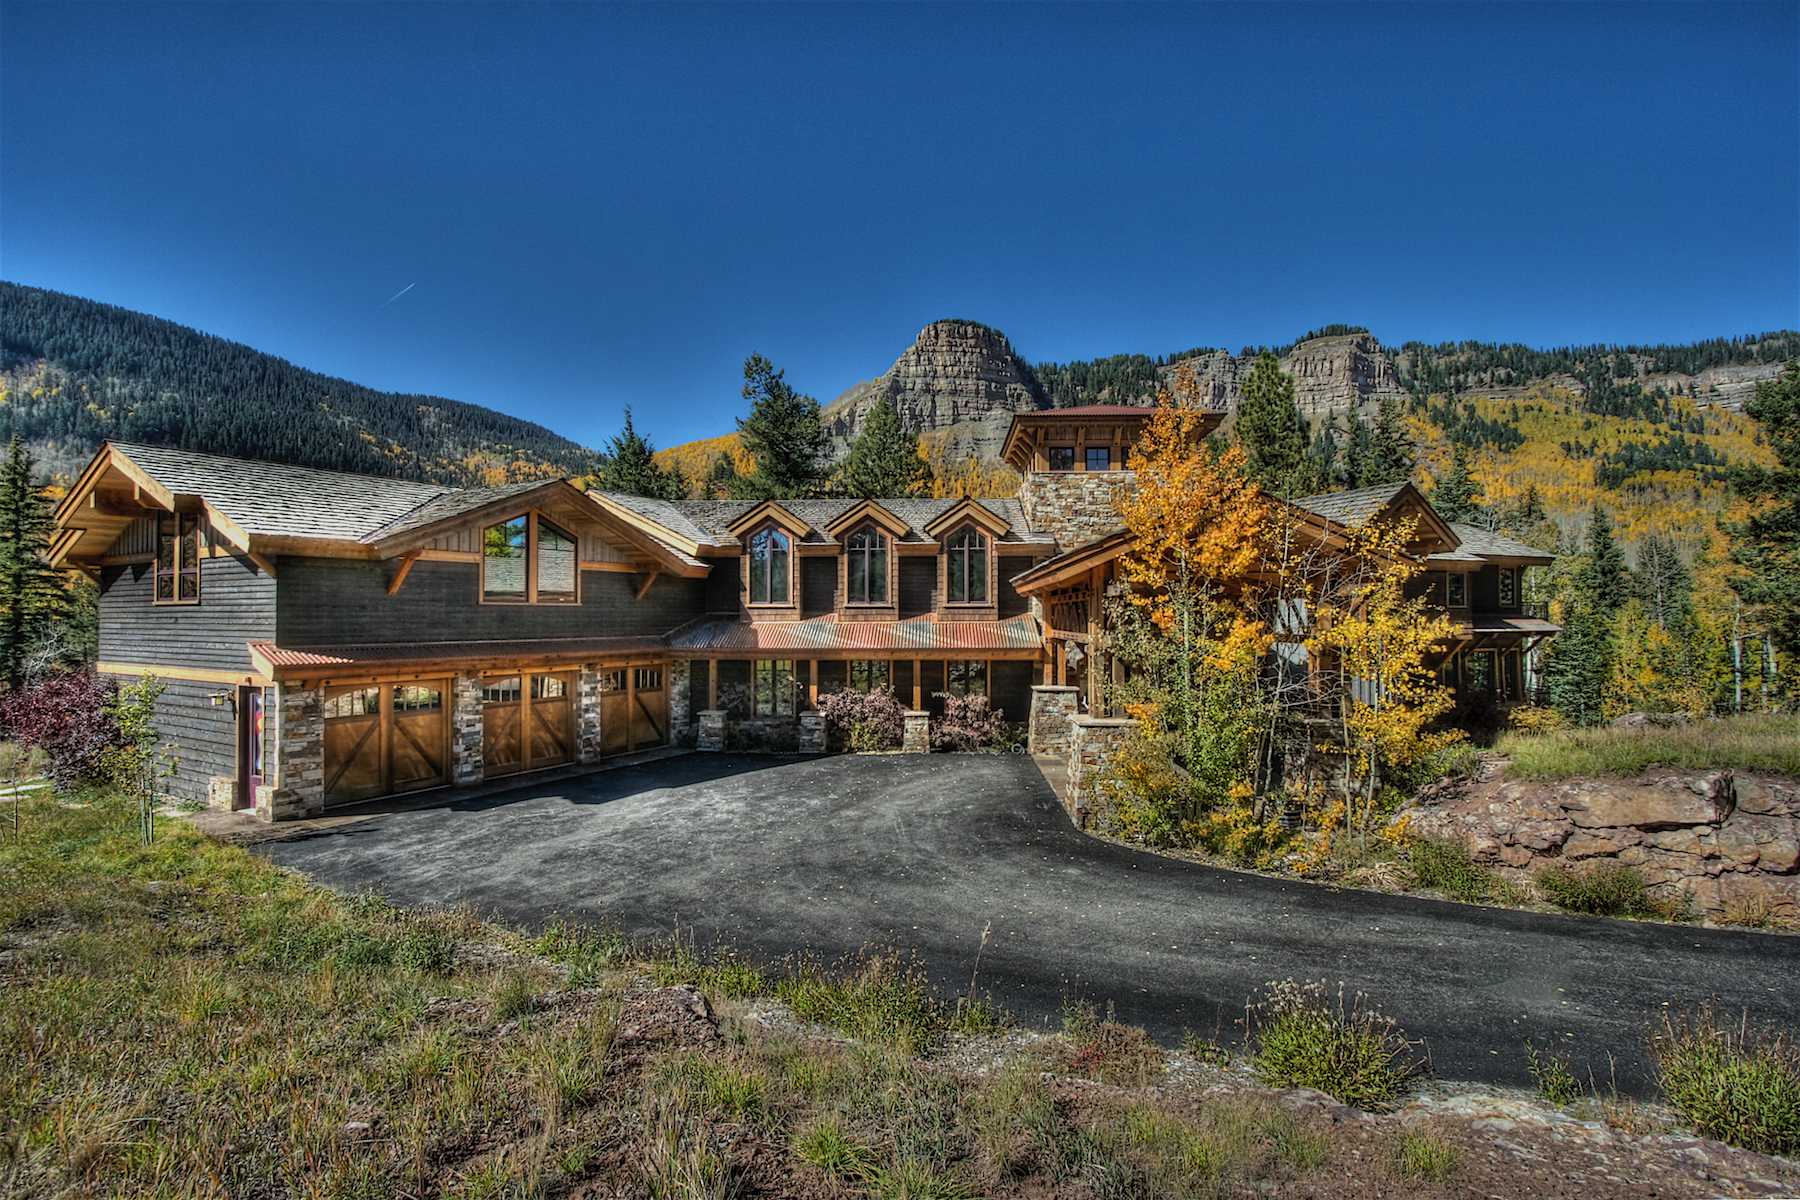 Property のために 売買 アット CastleRock at Two Dogs 455 Pinnacle View Drive, Durango, コロラド 81301 アメリカ